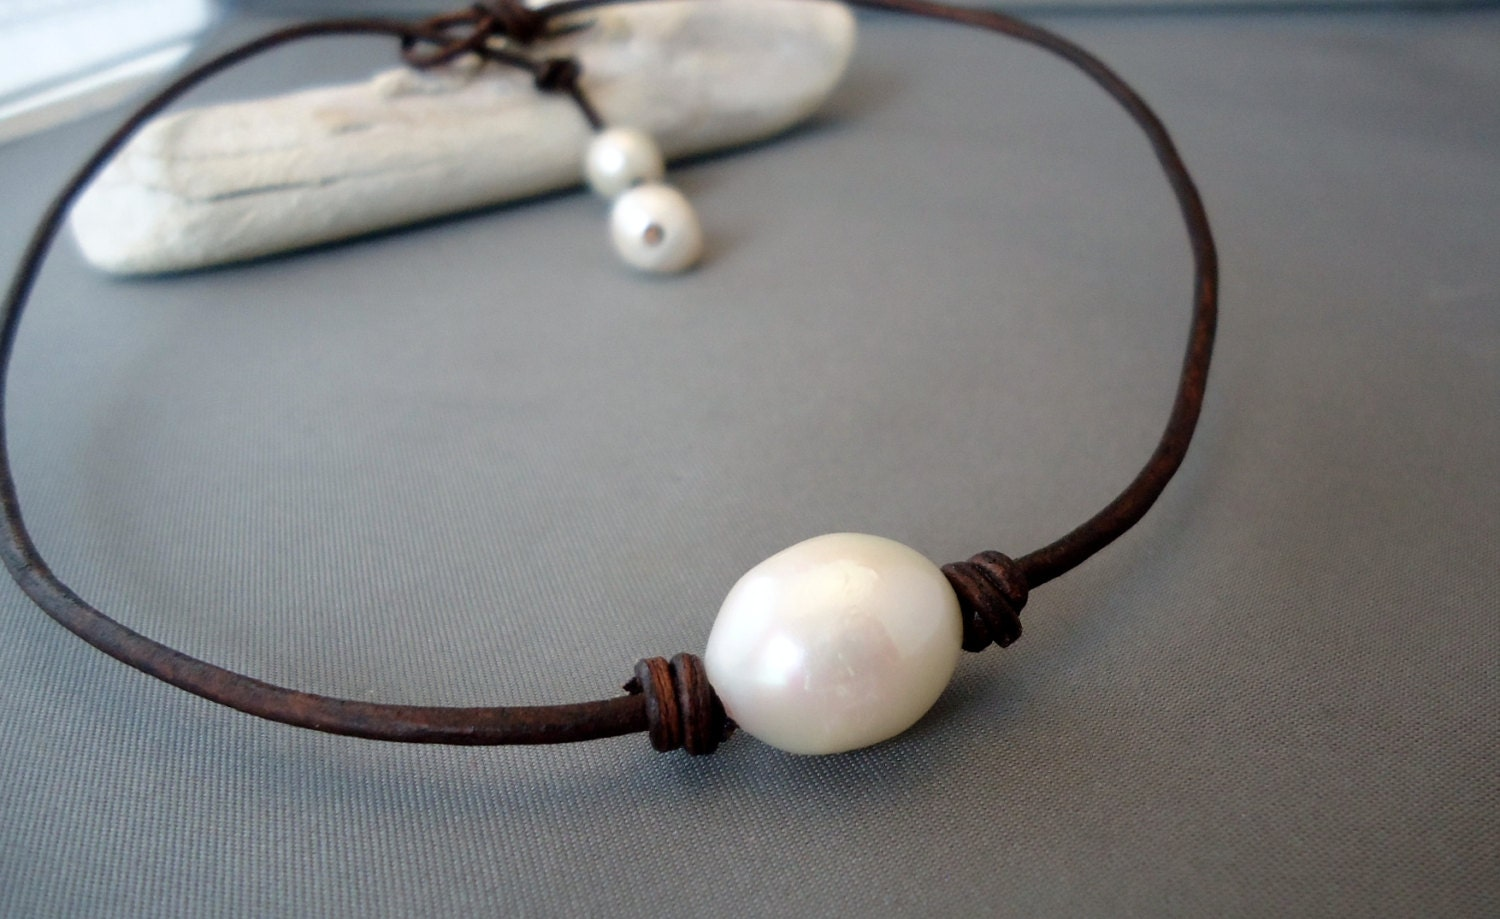 Giant,Baroque,pearl,Leather,knotted,Chic,necklace,Jewelry,leather_pearls,pearl_necklace,leather,freshwater_pearls,iseadesigns,knotted_leather,leather_work,pearl_choker,leather_necklace,leather_lace,seaside,beach_bridal